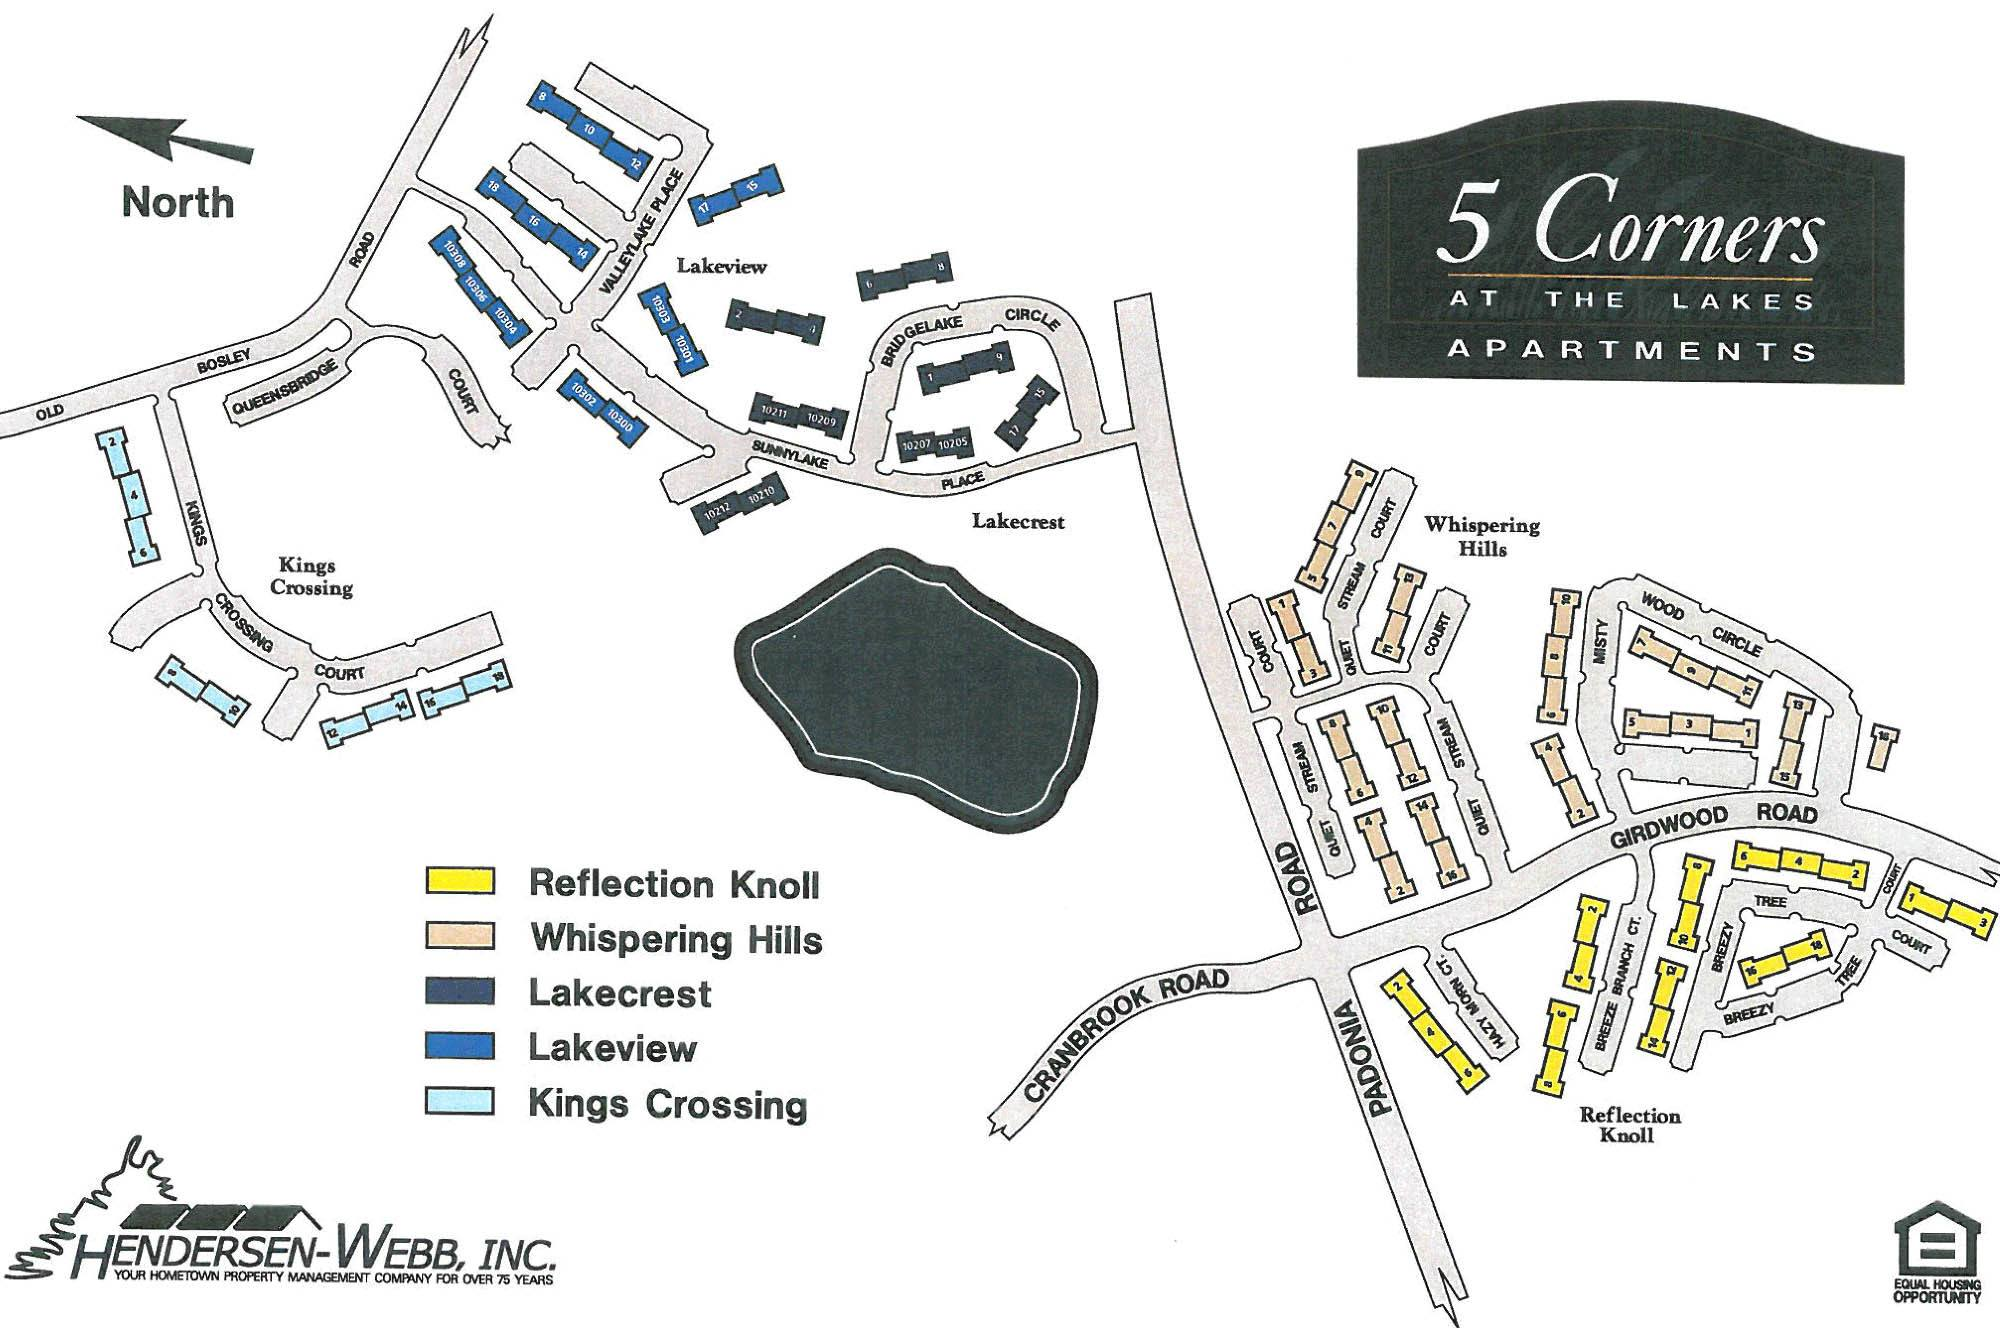 Open sitemap for 5 Corners Apartments in Timonium, Maryland